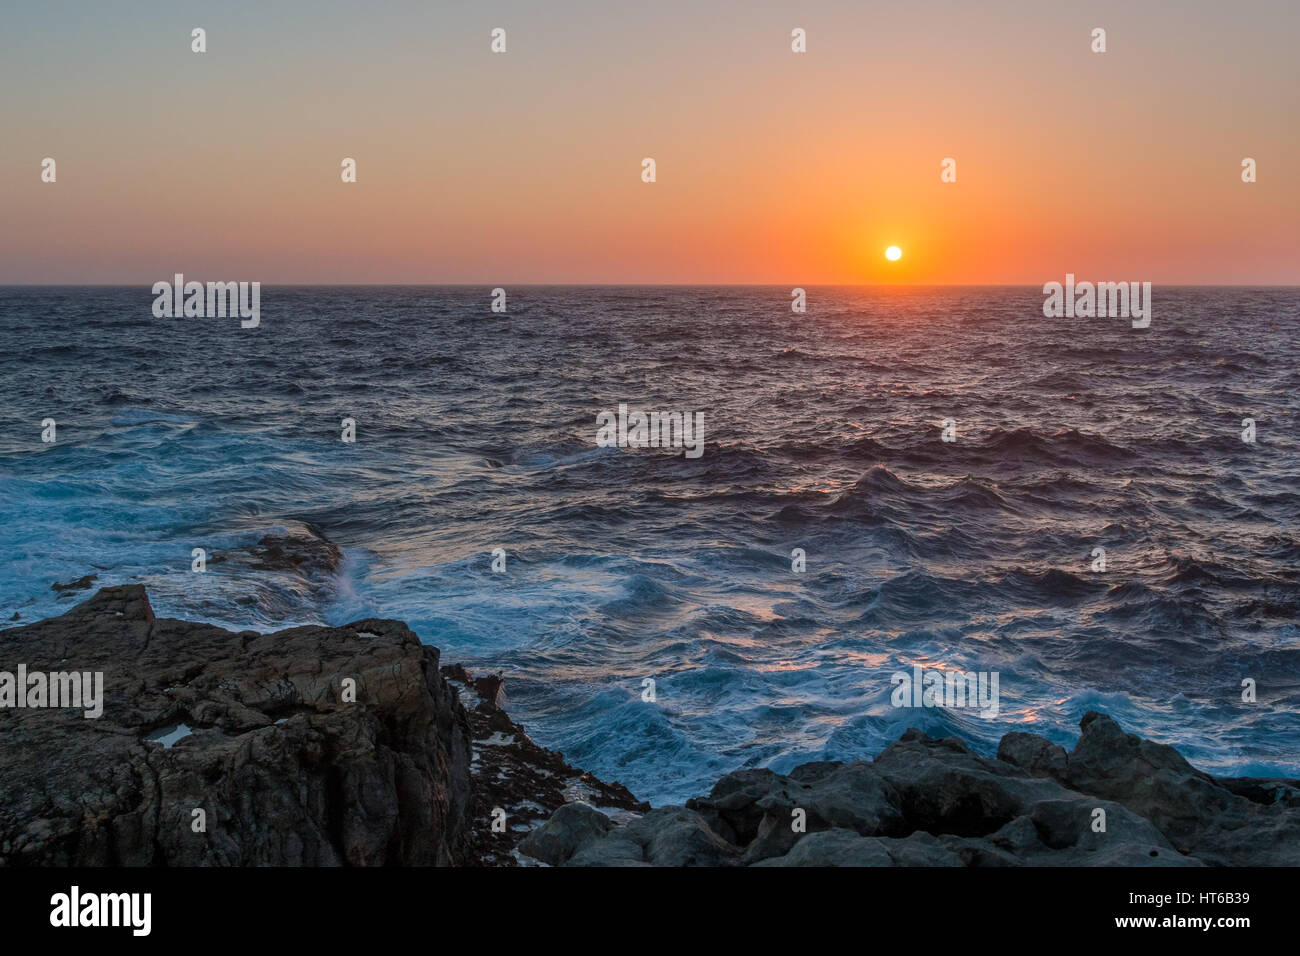 Sunset over the Mediterranean from Gozo, Malta - Stock Image